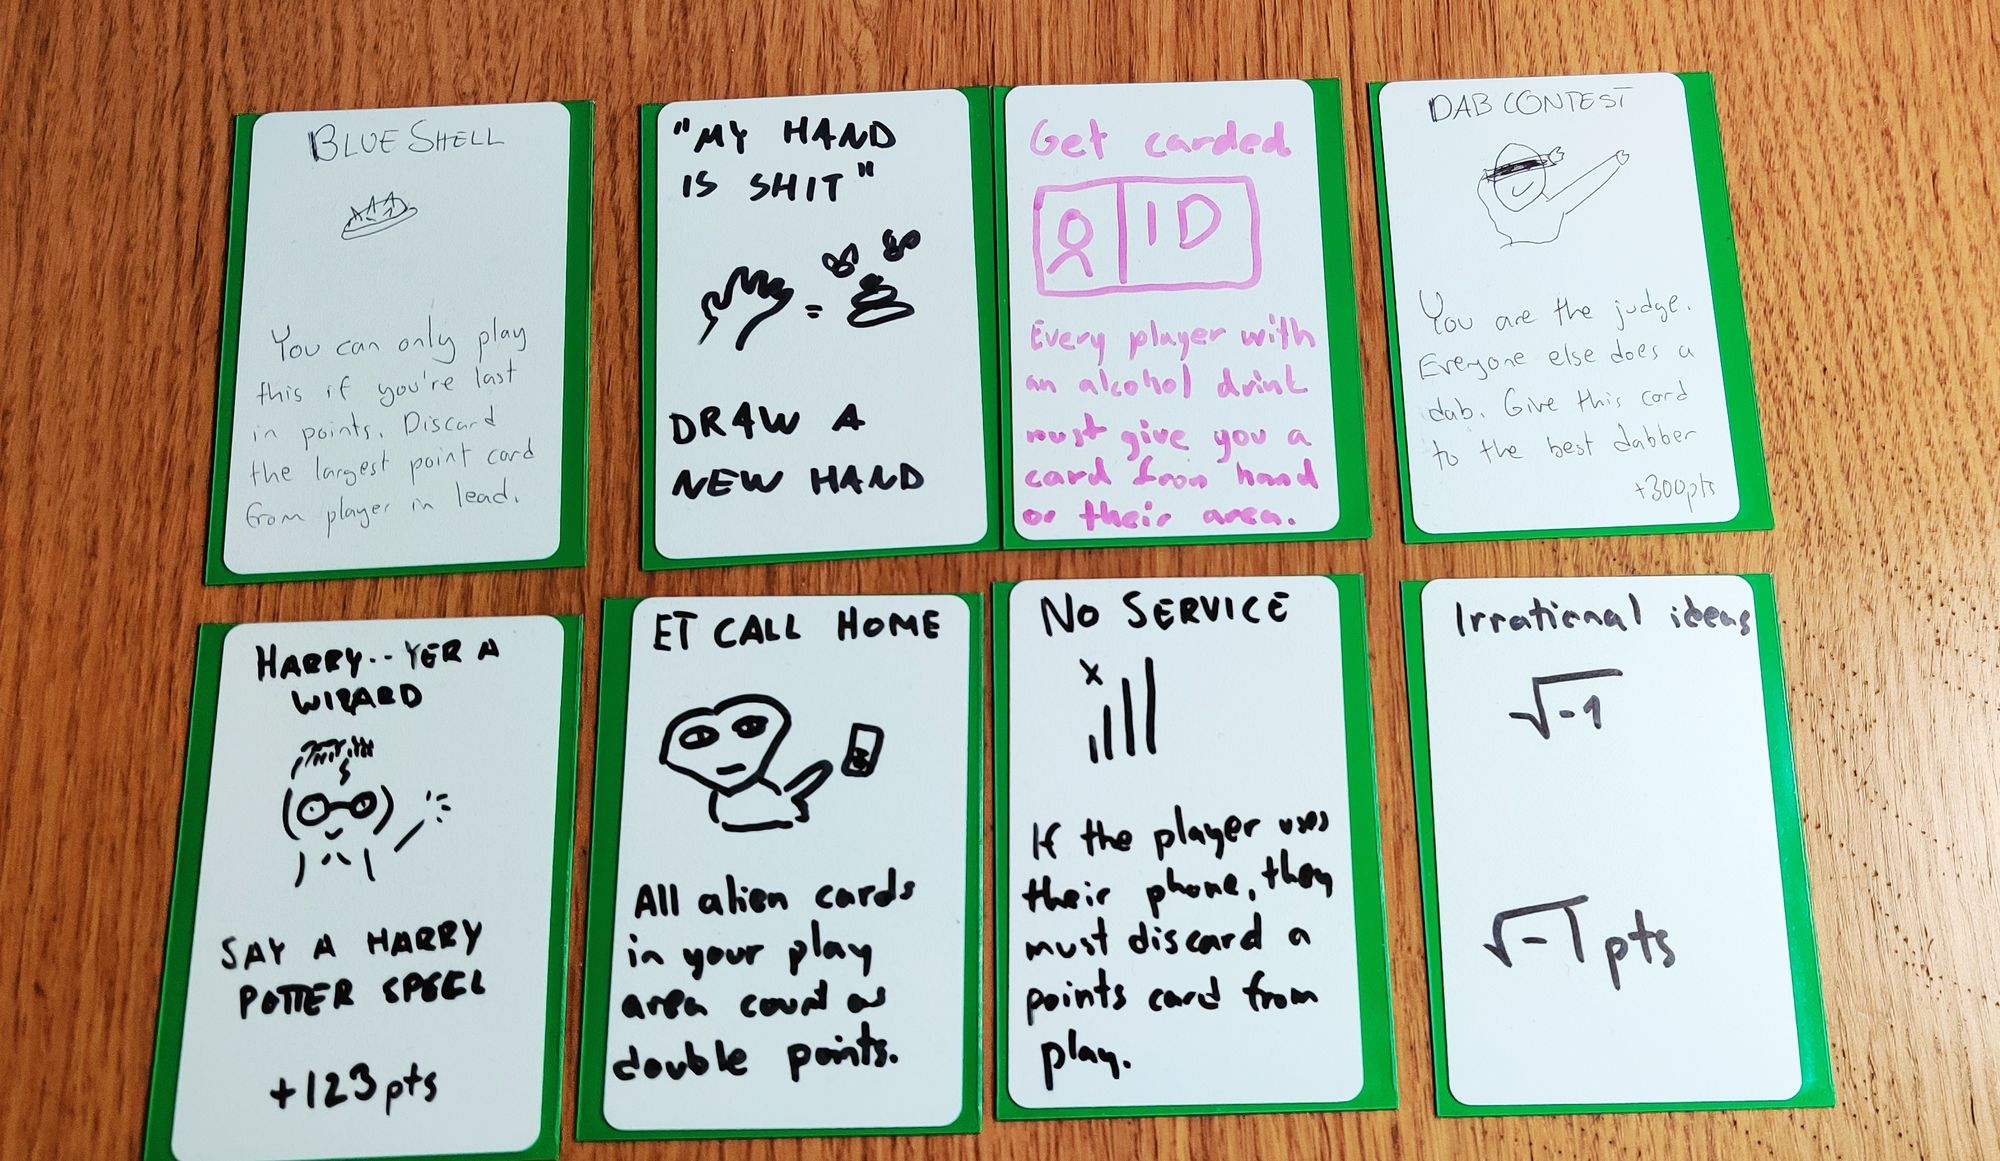 Eight cards with handwritten test and pictures in two rows of 4